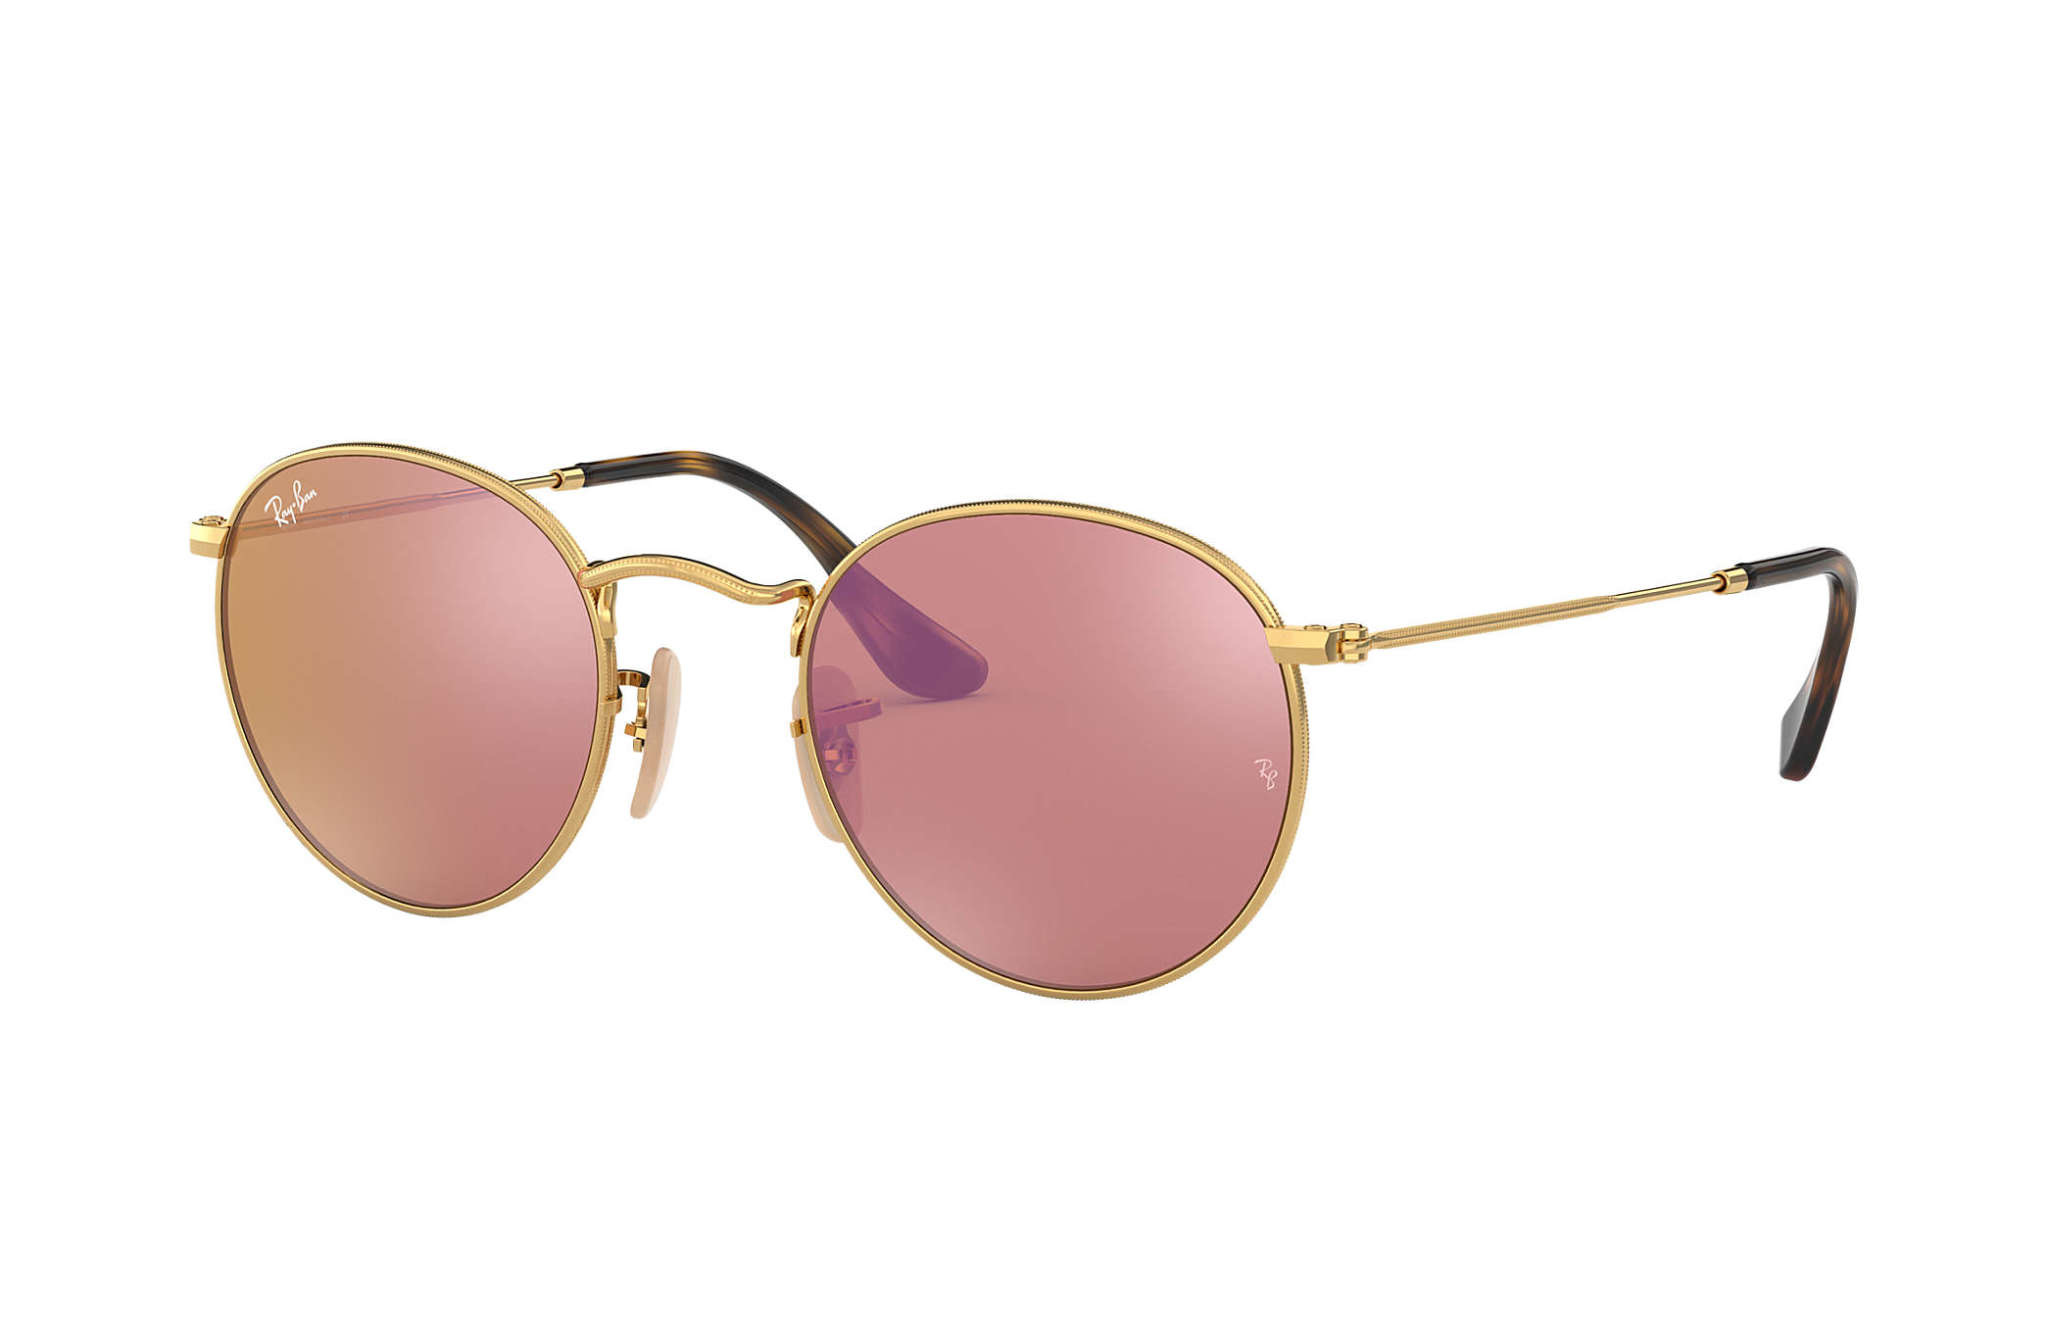 22 Ray Ban Round Shiny Gold Copper Flash-1